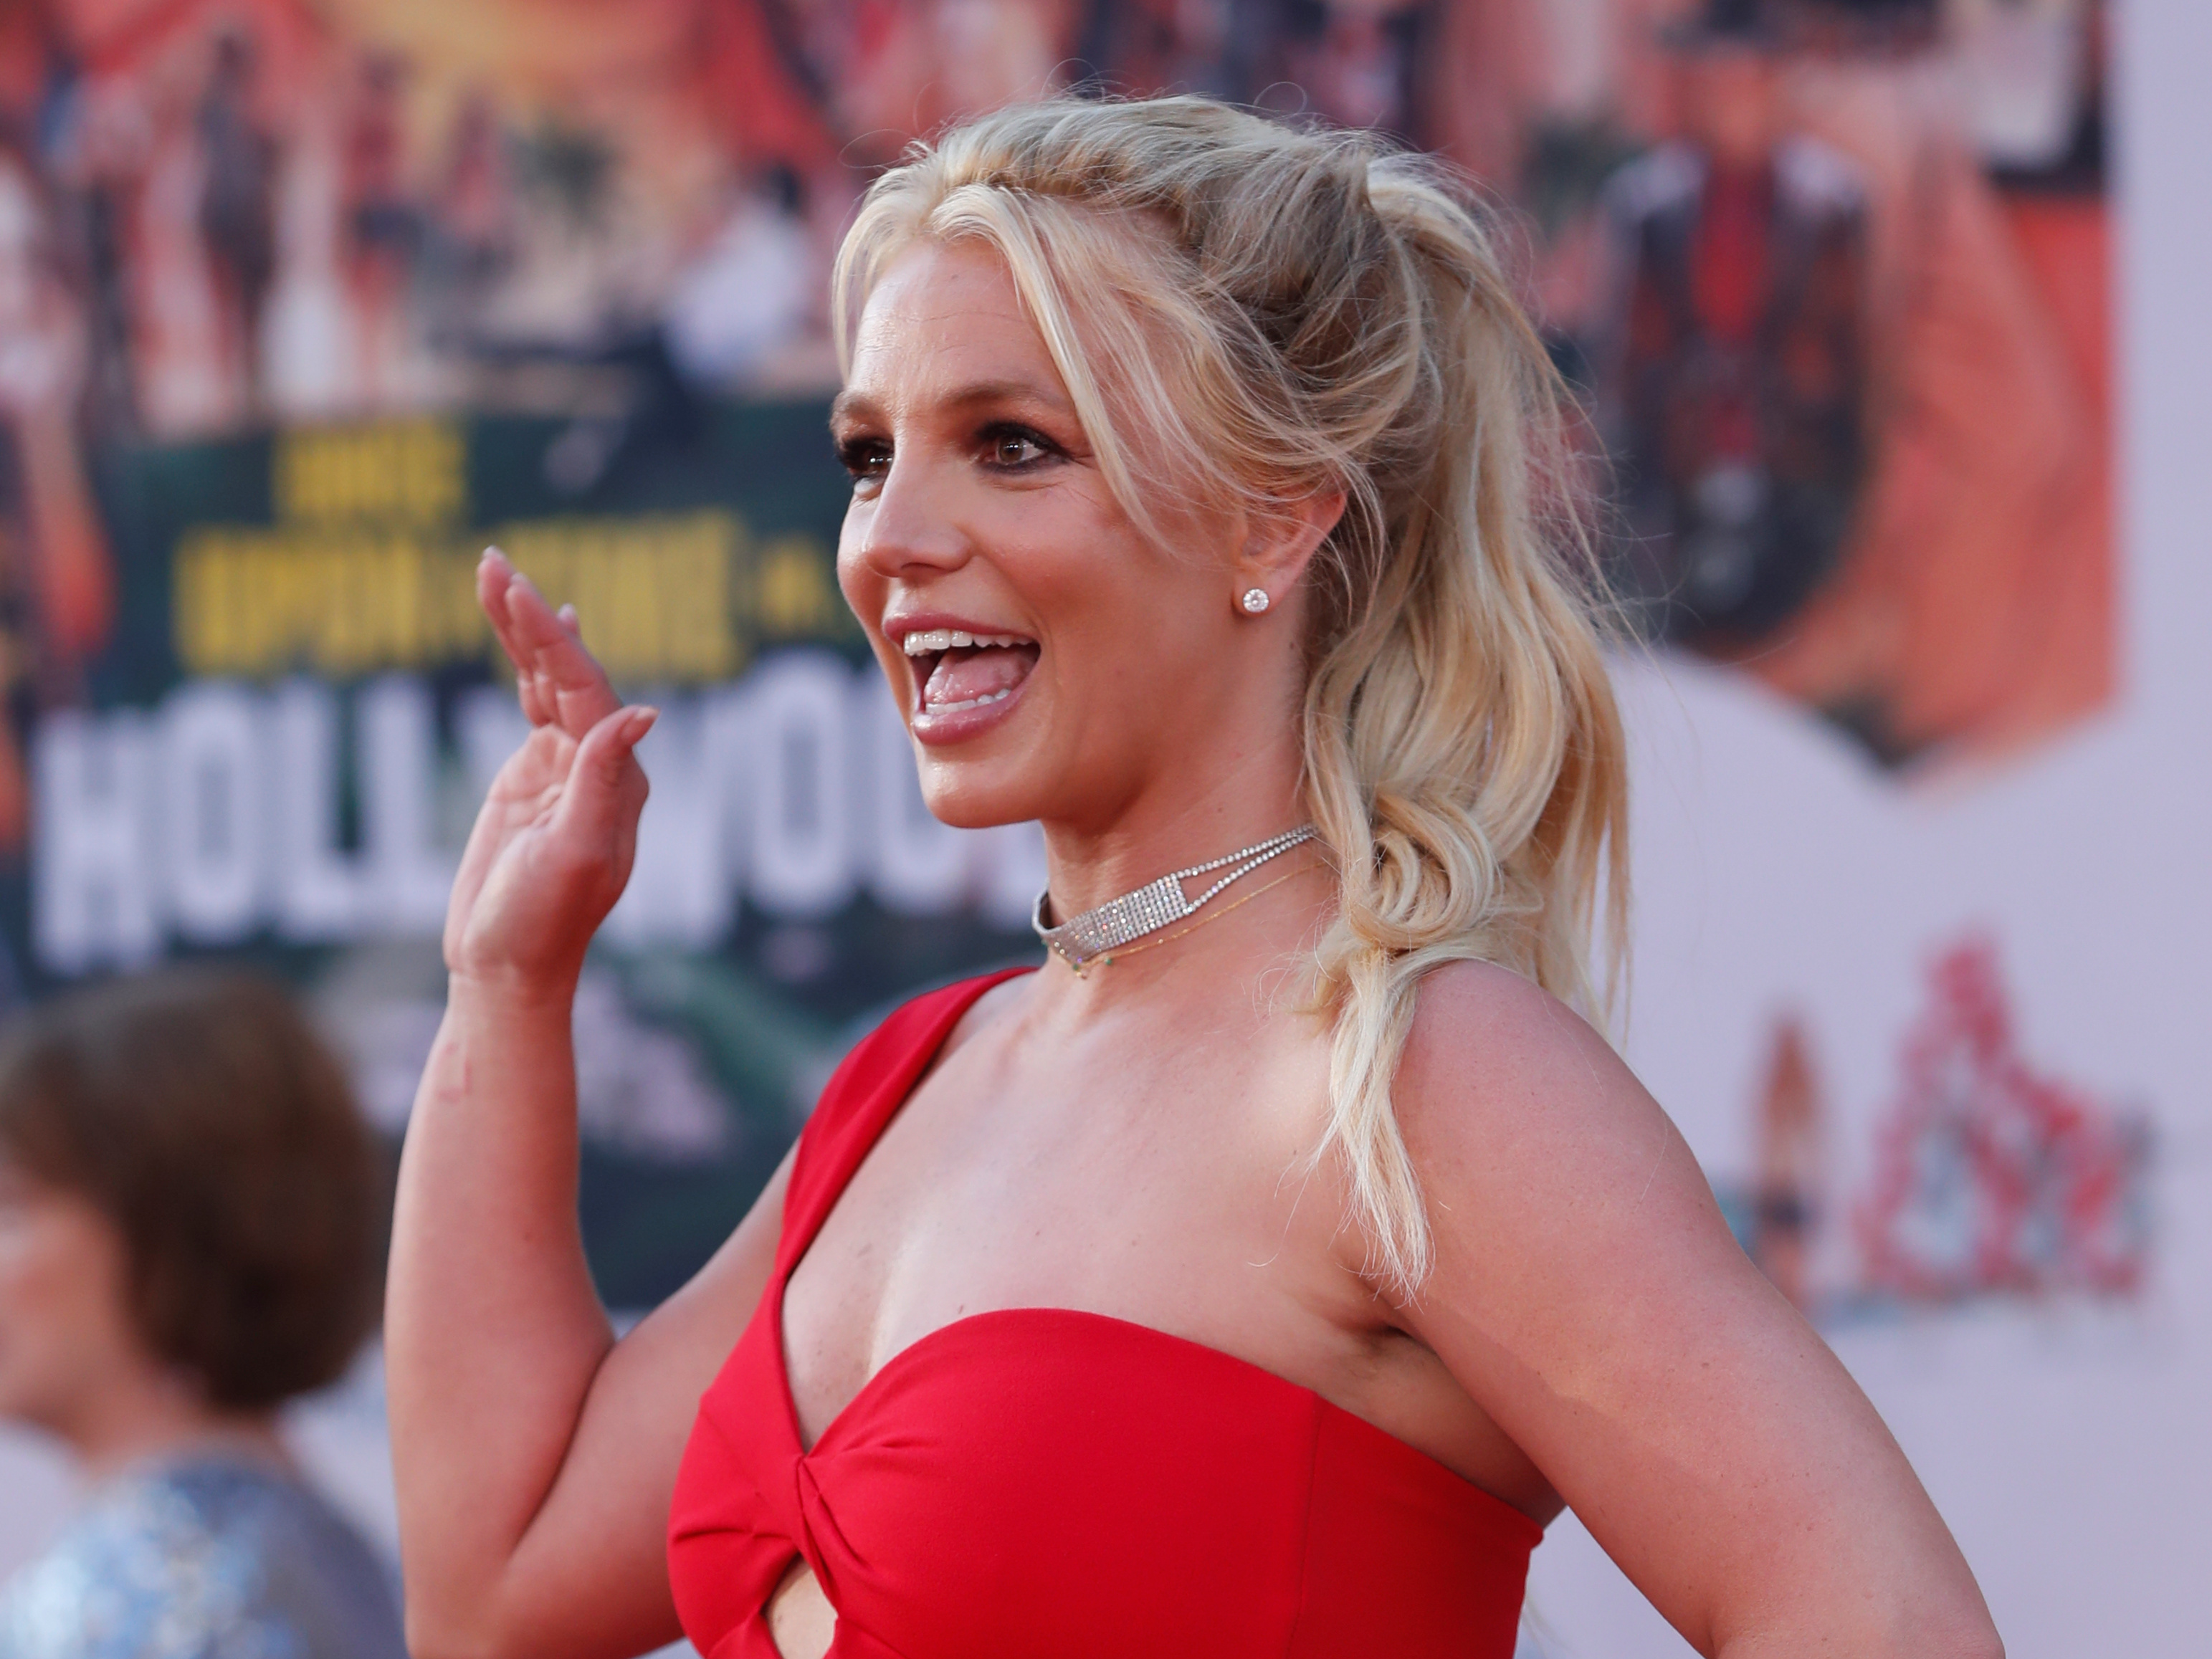 Britney Spears hasn't legally managed her $59 million fortune in 12 years. Right here is how the pop icon makes and spends her cash, from Purpose browsing journeys to California mansions.